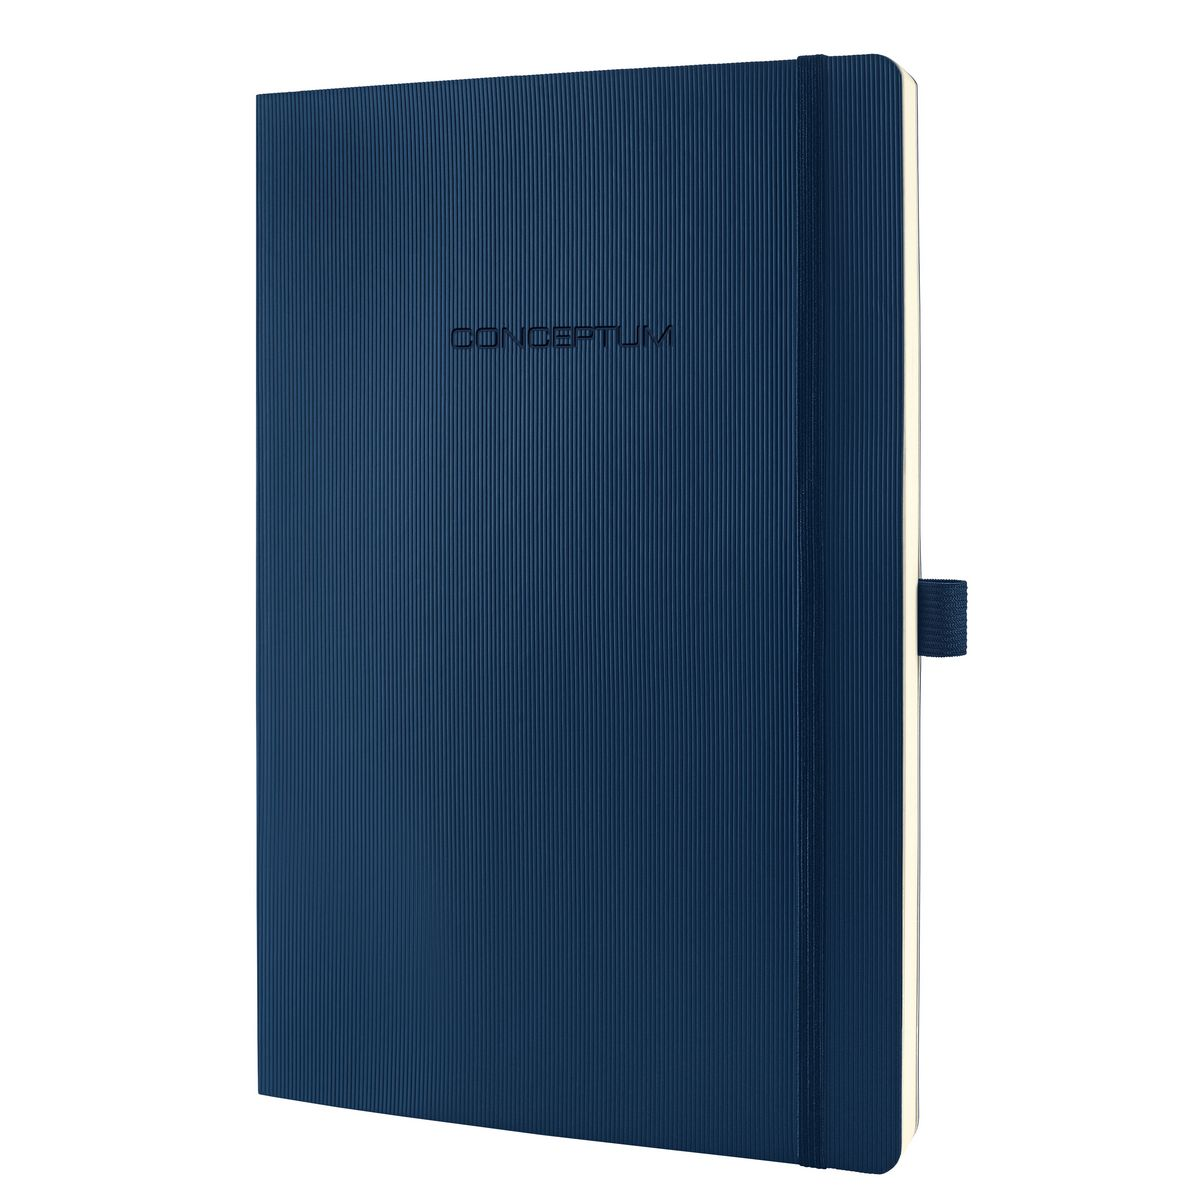 CONCEPTUM Softcover 187x270x14mm BL